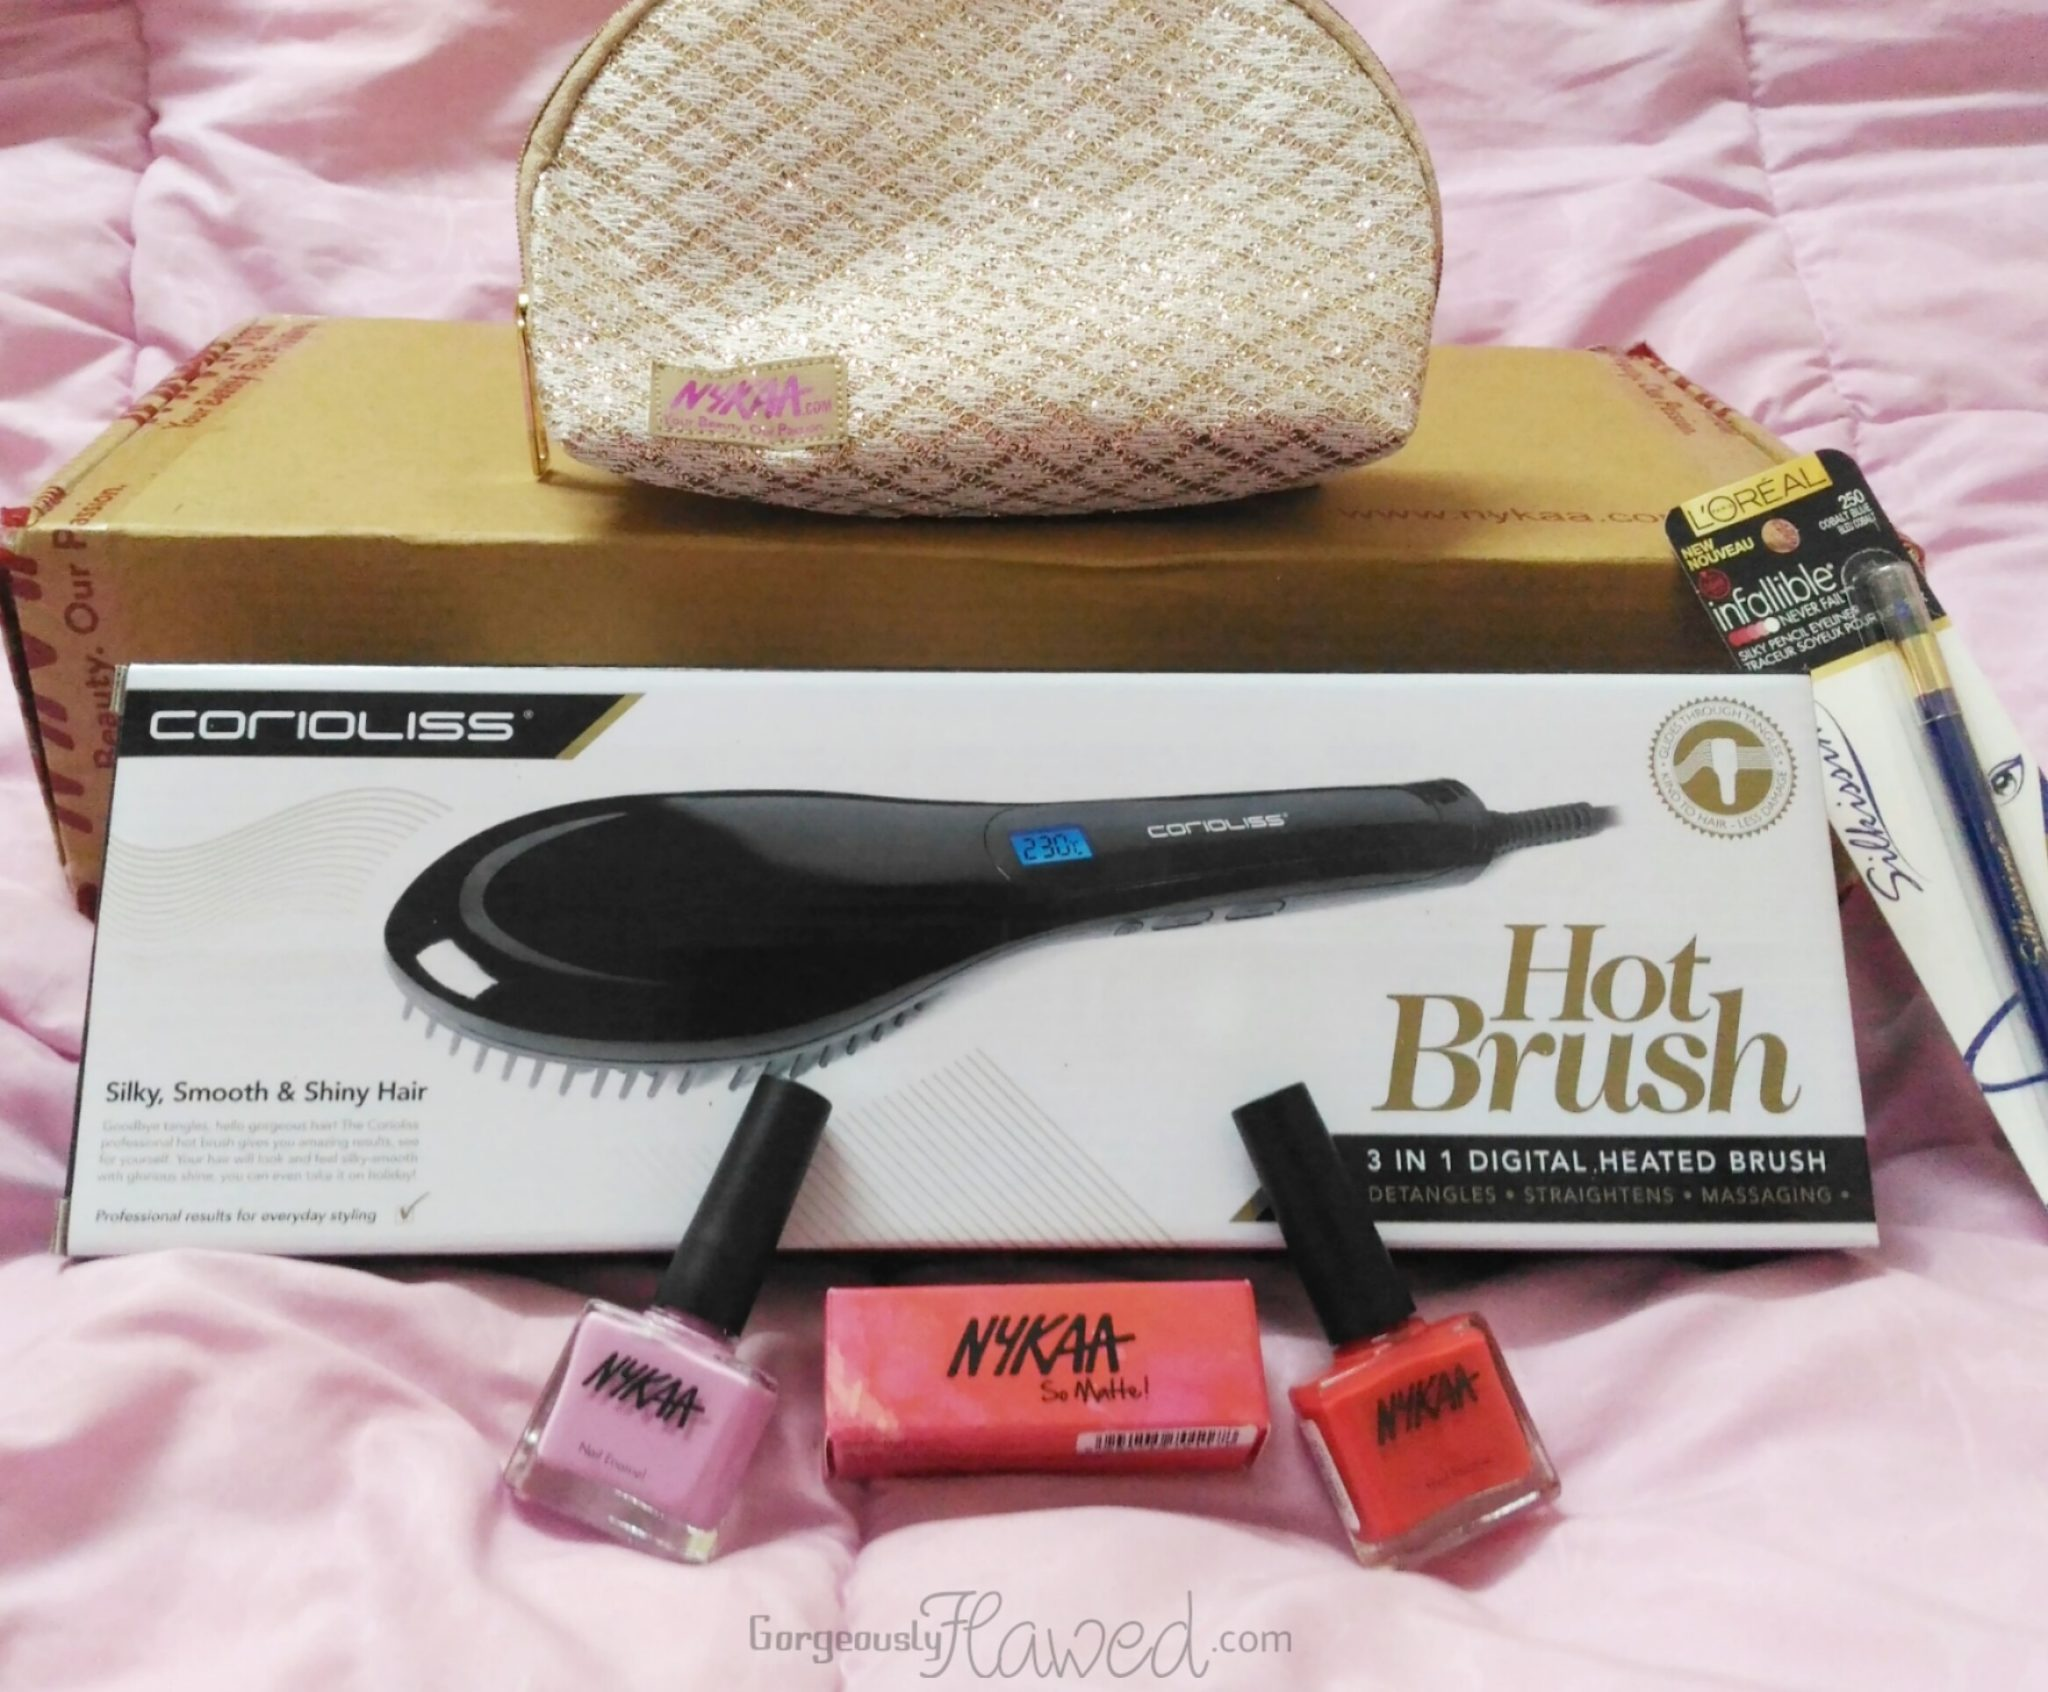 My Nykaa & Qtrove Christmas Sale Haul